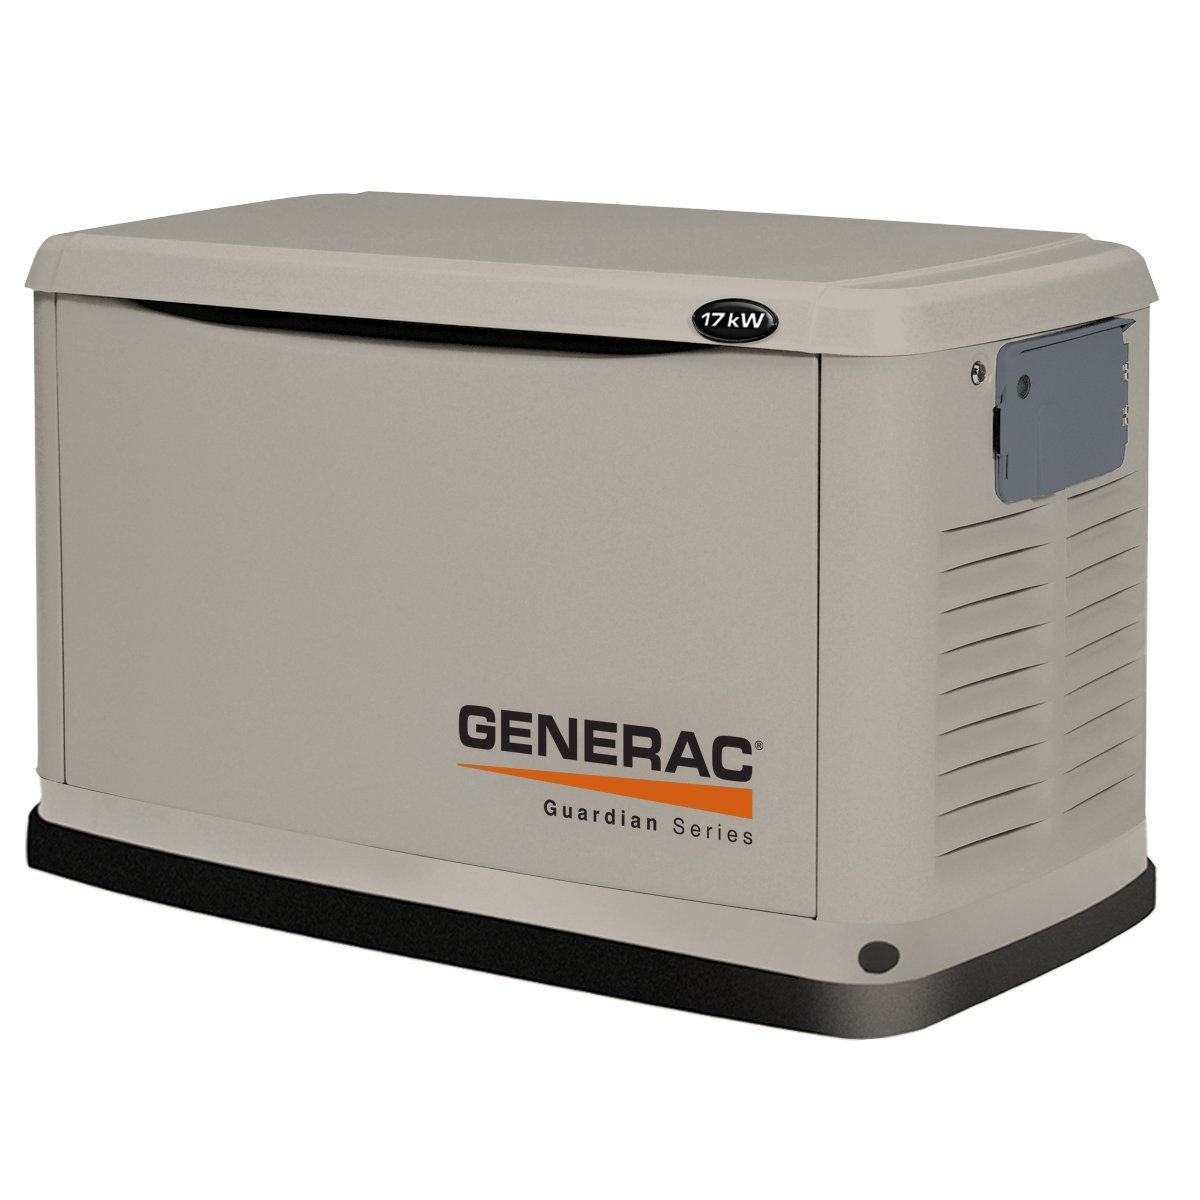 Generac 6248 17,000 Watt Air-Cooled Steel Enclosure Liquid Propane/Natural Gas Powered Standby Generator (CARB Compliant) without a Transfer Switch (Discontinued by Manufacturer)